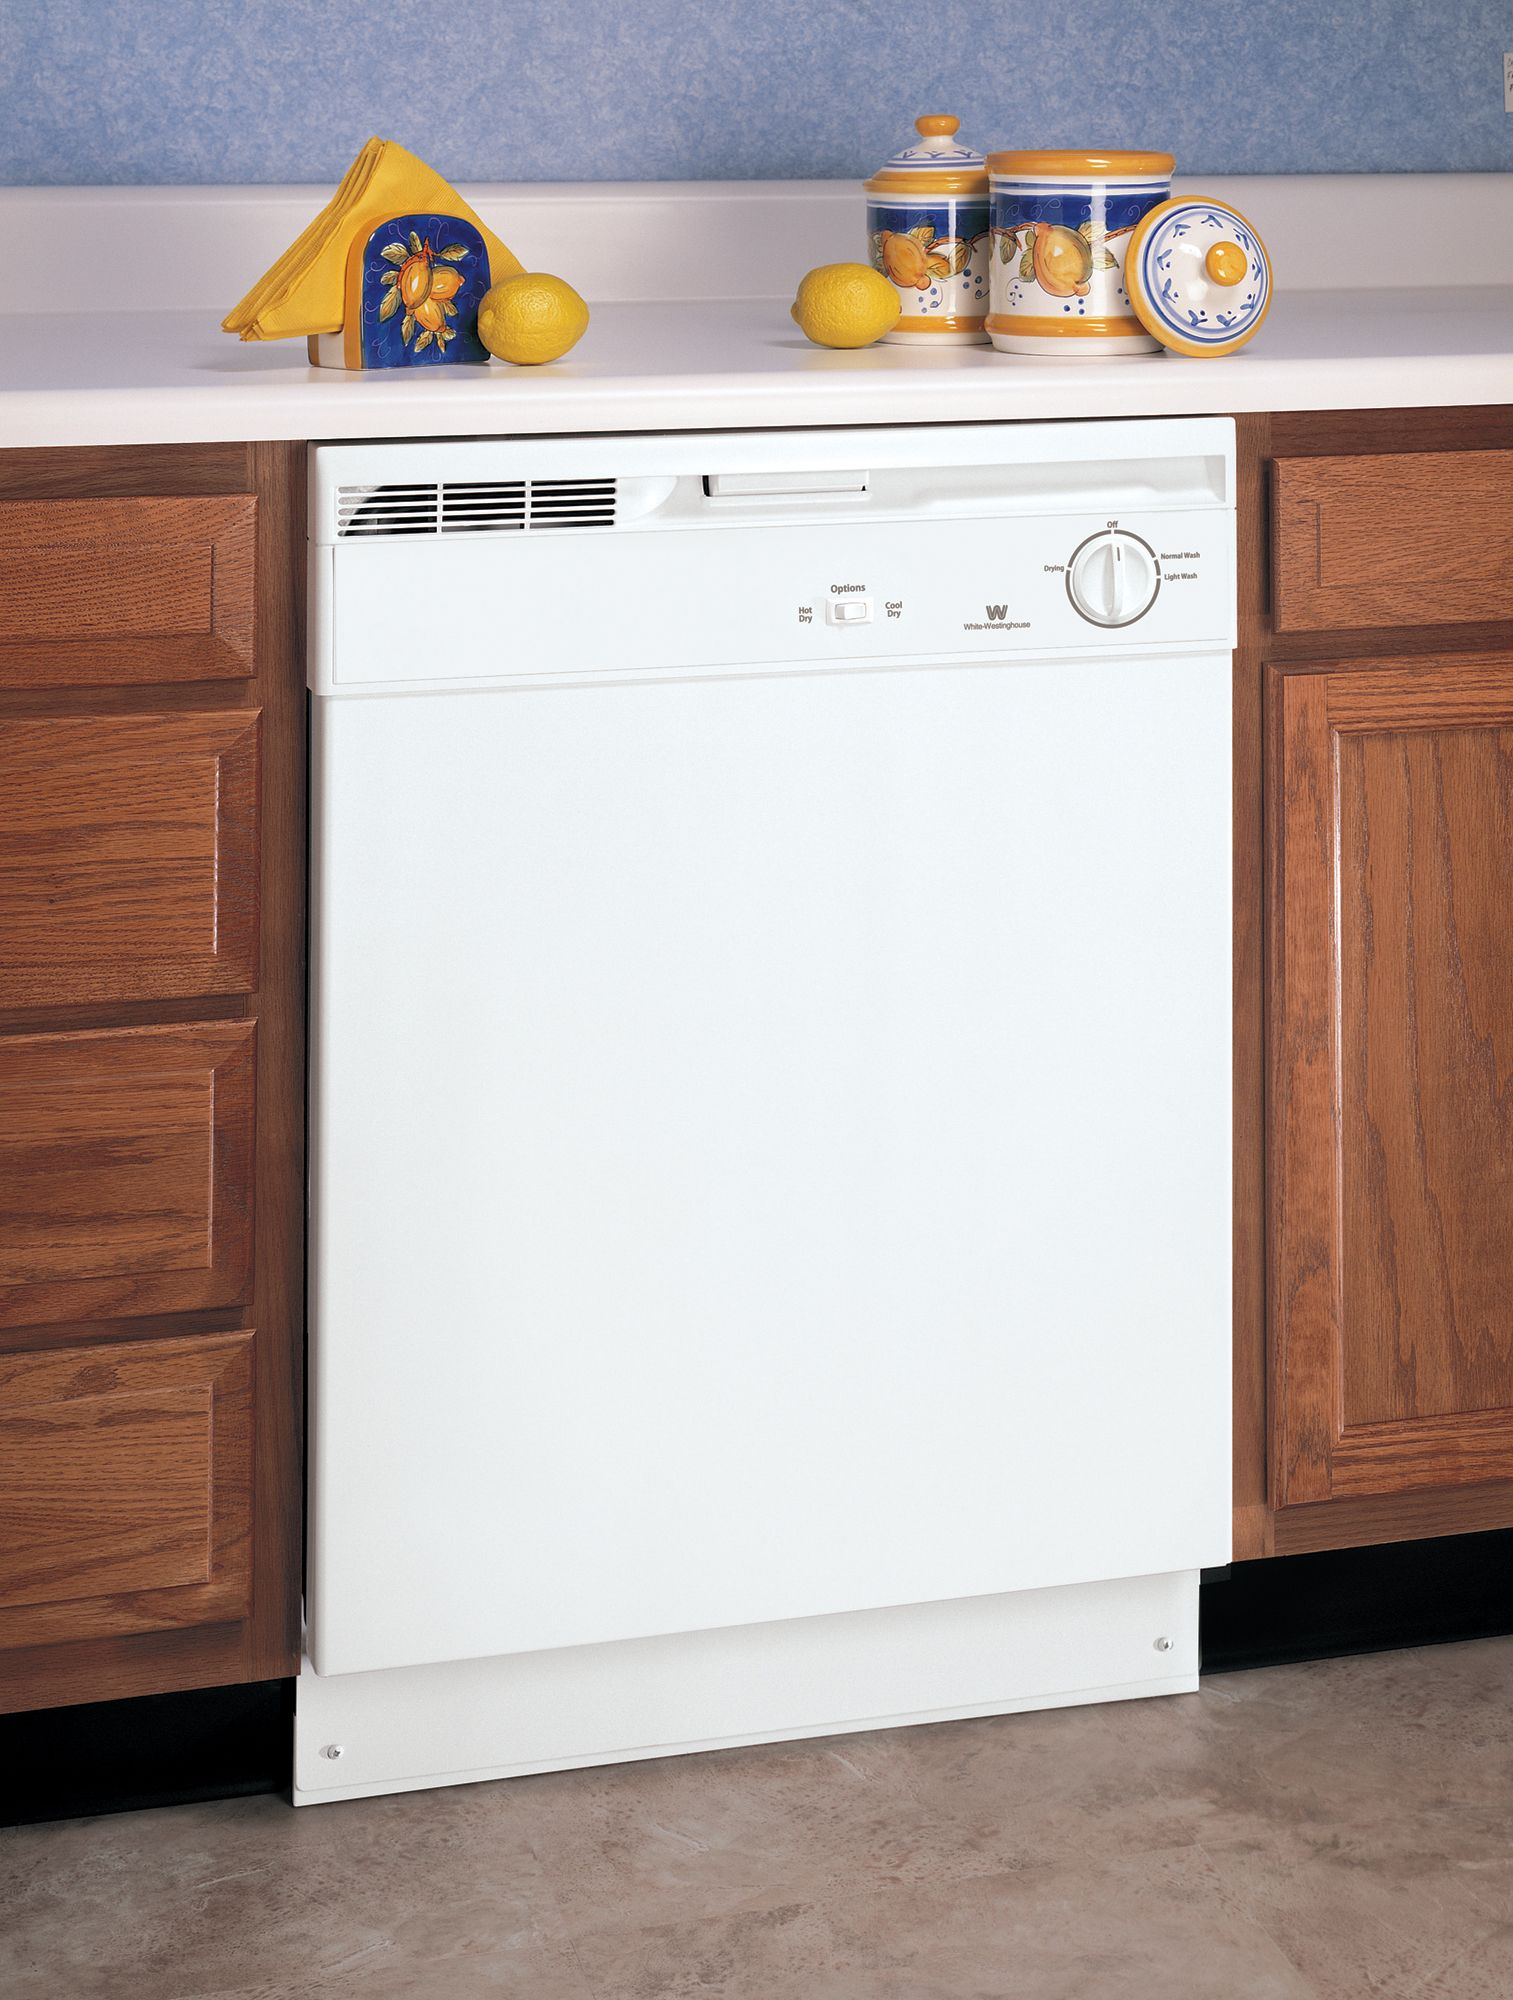 "White-Westinghouse 24"" Built-In Dishwasher"